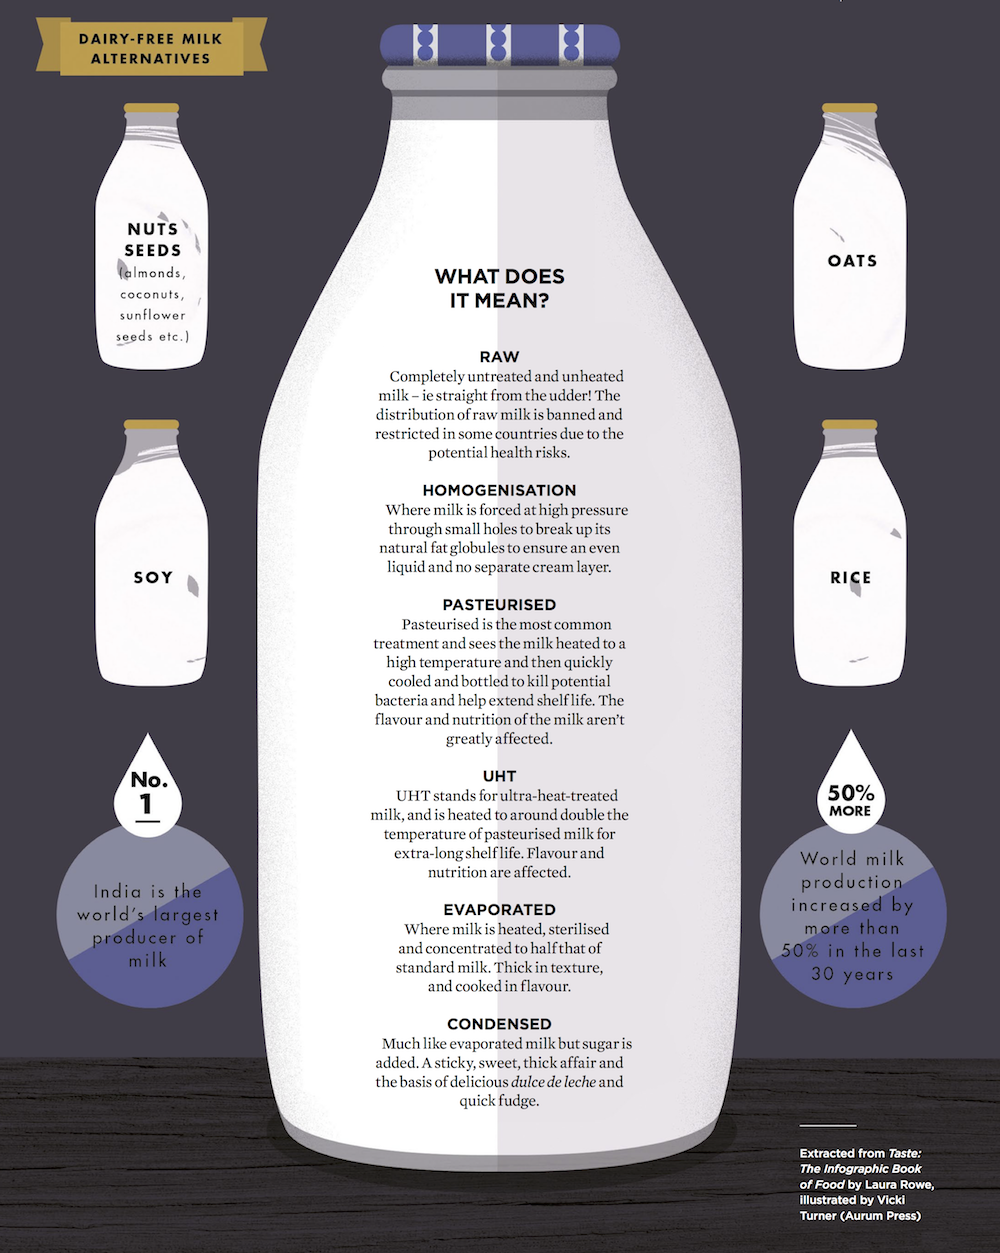 Extracted from Taste: The Infographic Book of Food by Laura Rowe, illustrated by Vicki Turner (Aurum Press)